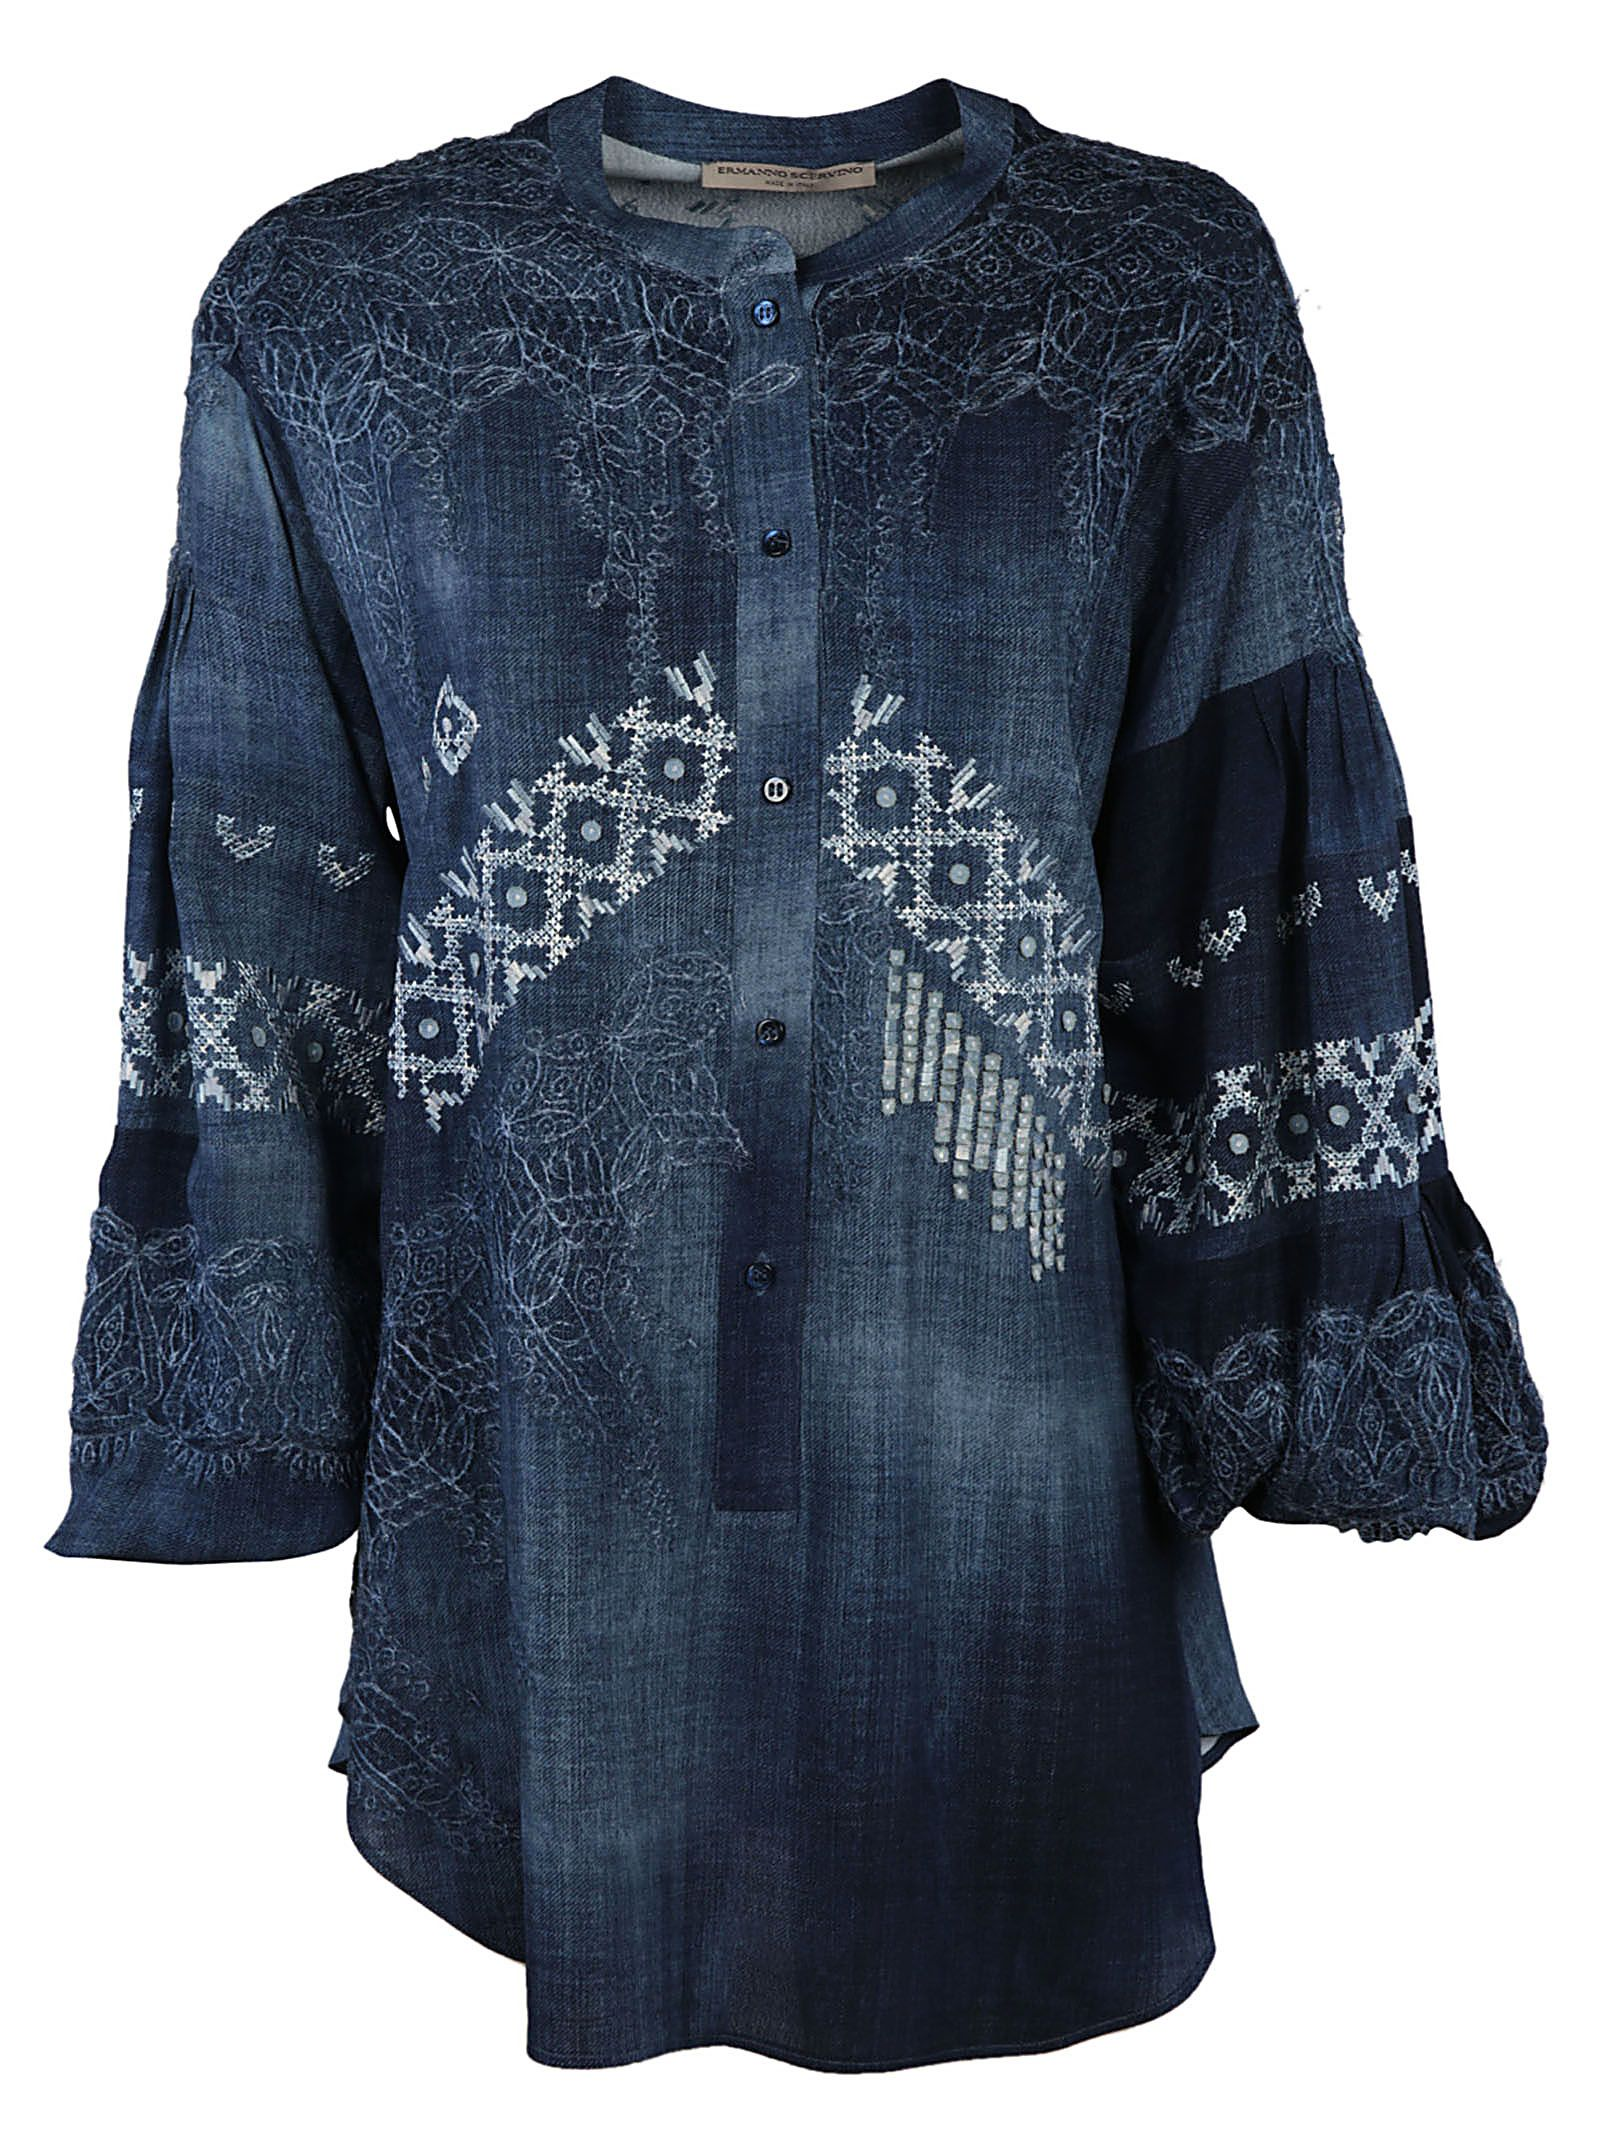 Ermanno Scervino Embroidered Detail Blouse